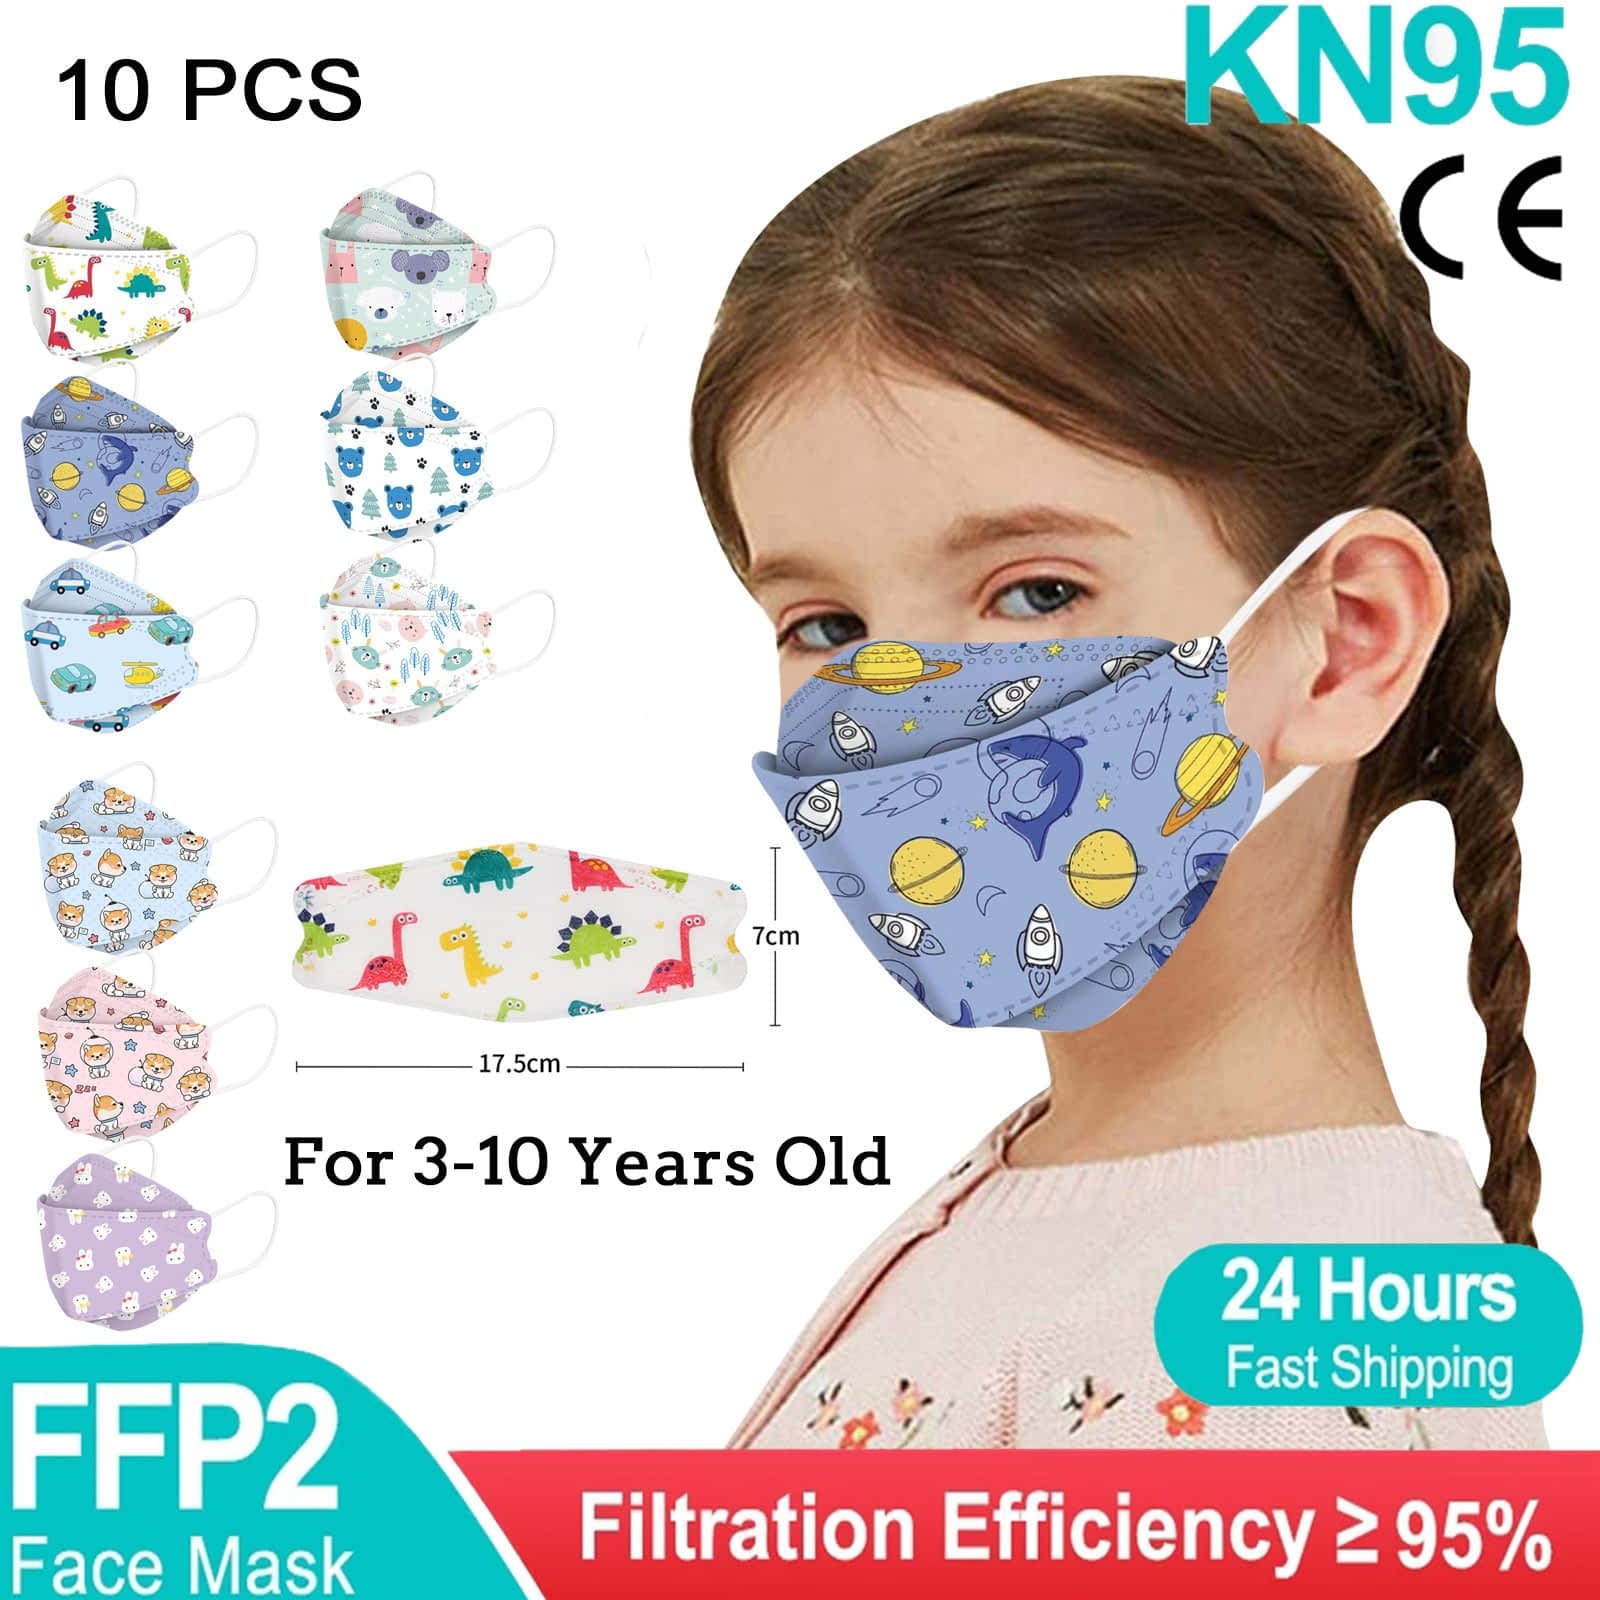 10PCS-mascarillas-ffp2-masque-enfant-kn95-mascarillas-fpp2-ni-os-for-kids-Dinosaur-print-face-mask-7.jpg